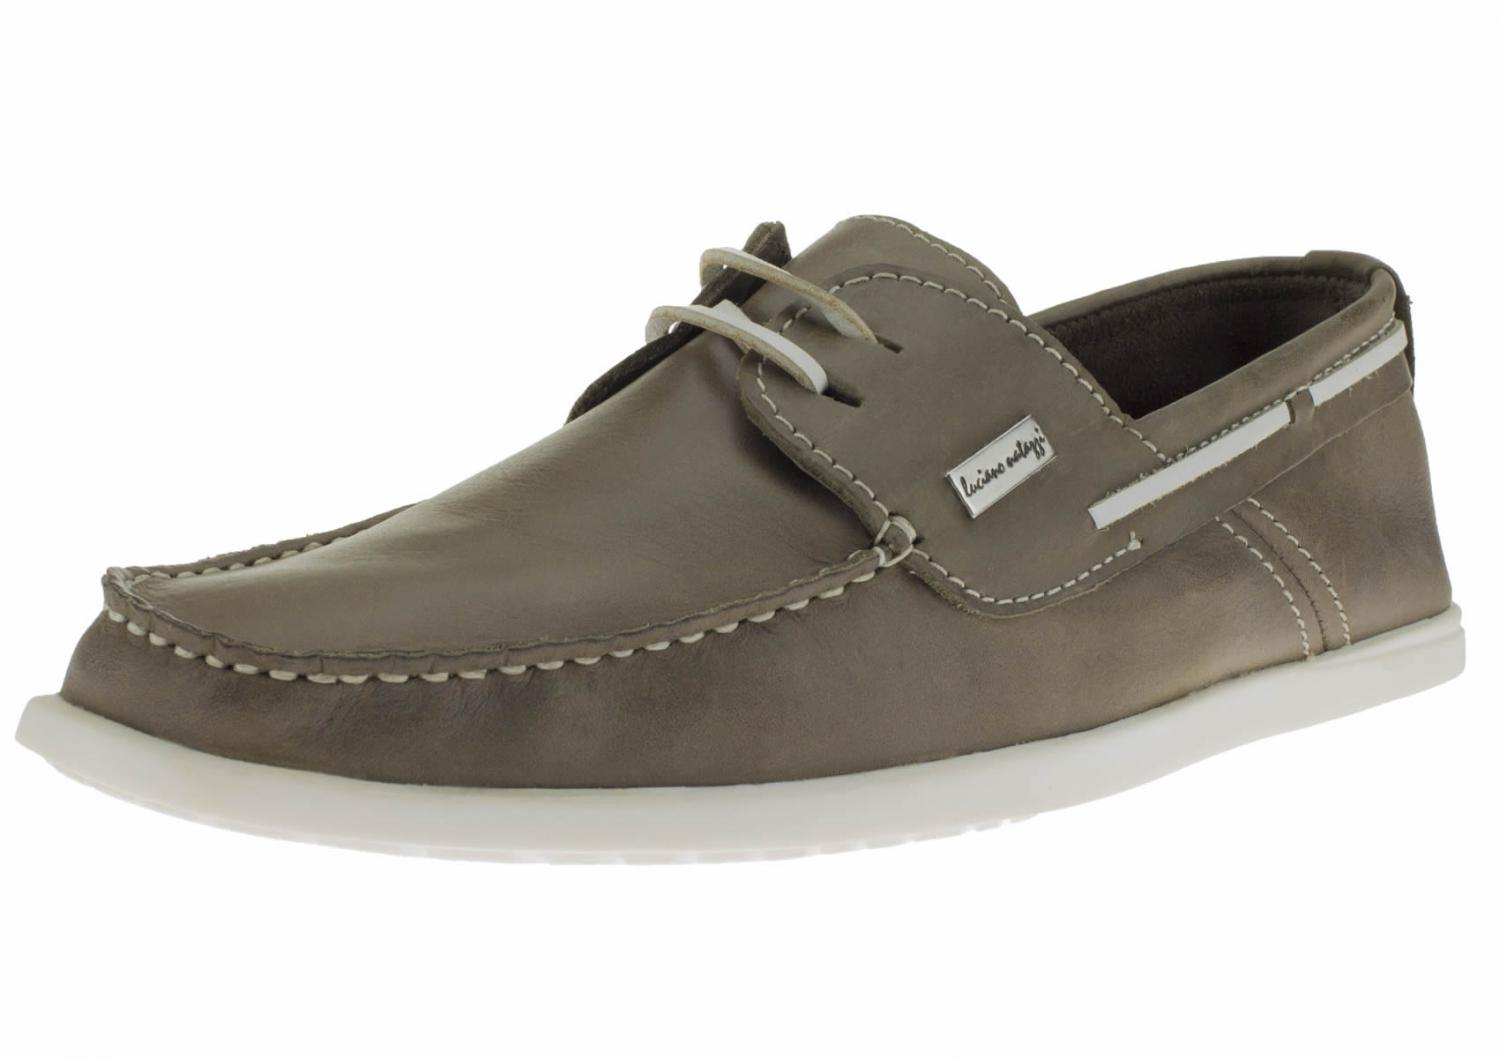 Details about  /Luciano Natazzi Mens Leather Boat Shoes Original 2 Eye Yacht Club